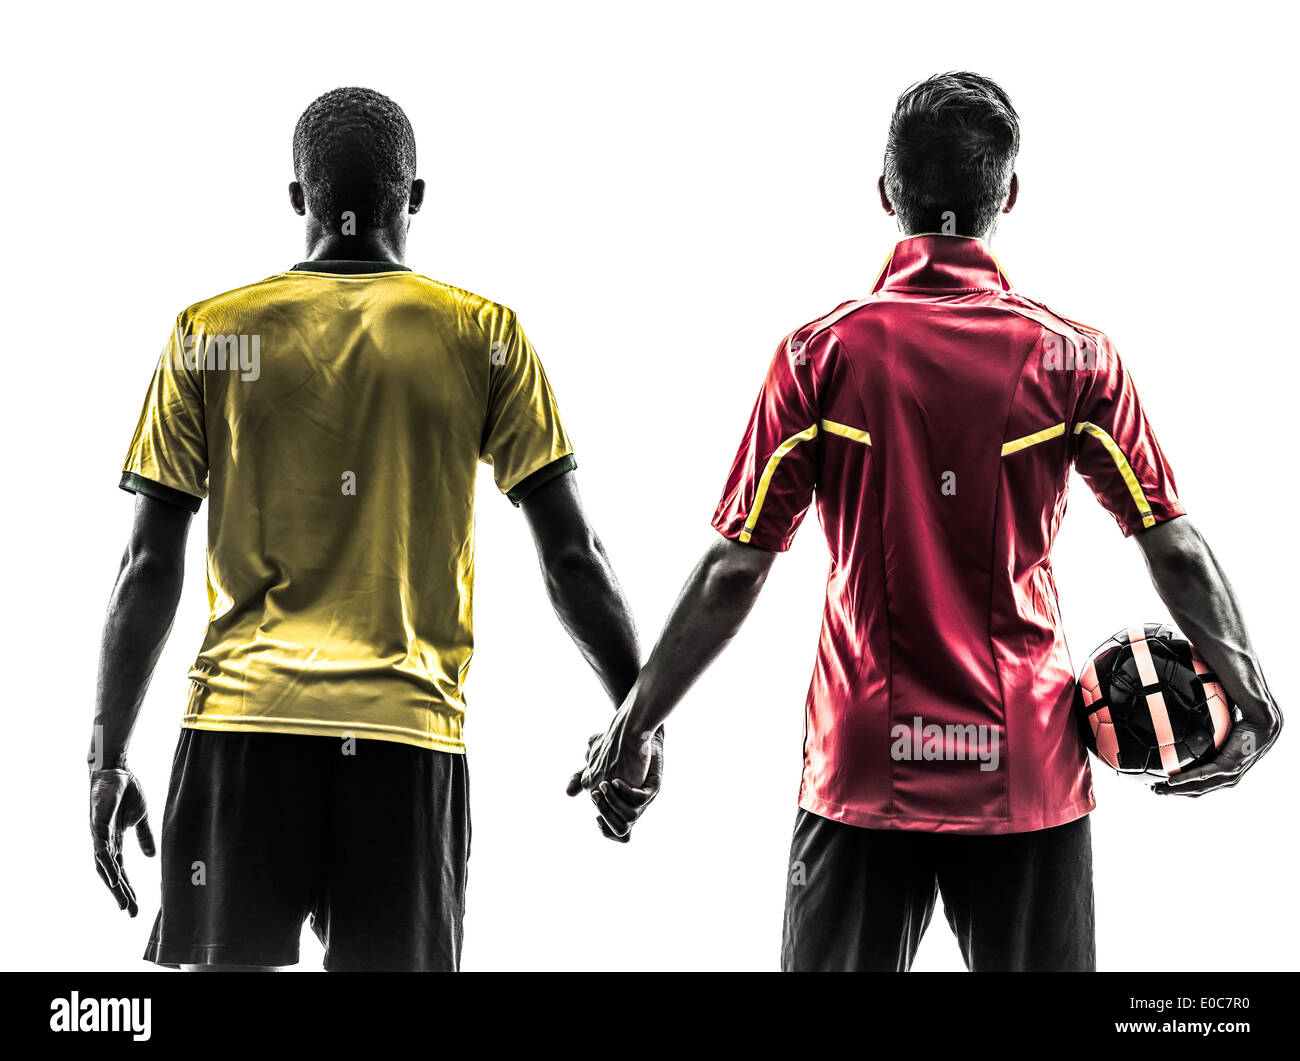 two men soccer player playing football competition hand in hand in silhouette on white background - Stock Image